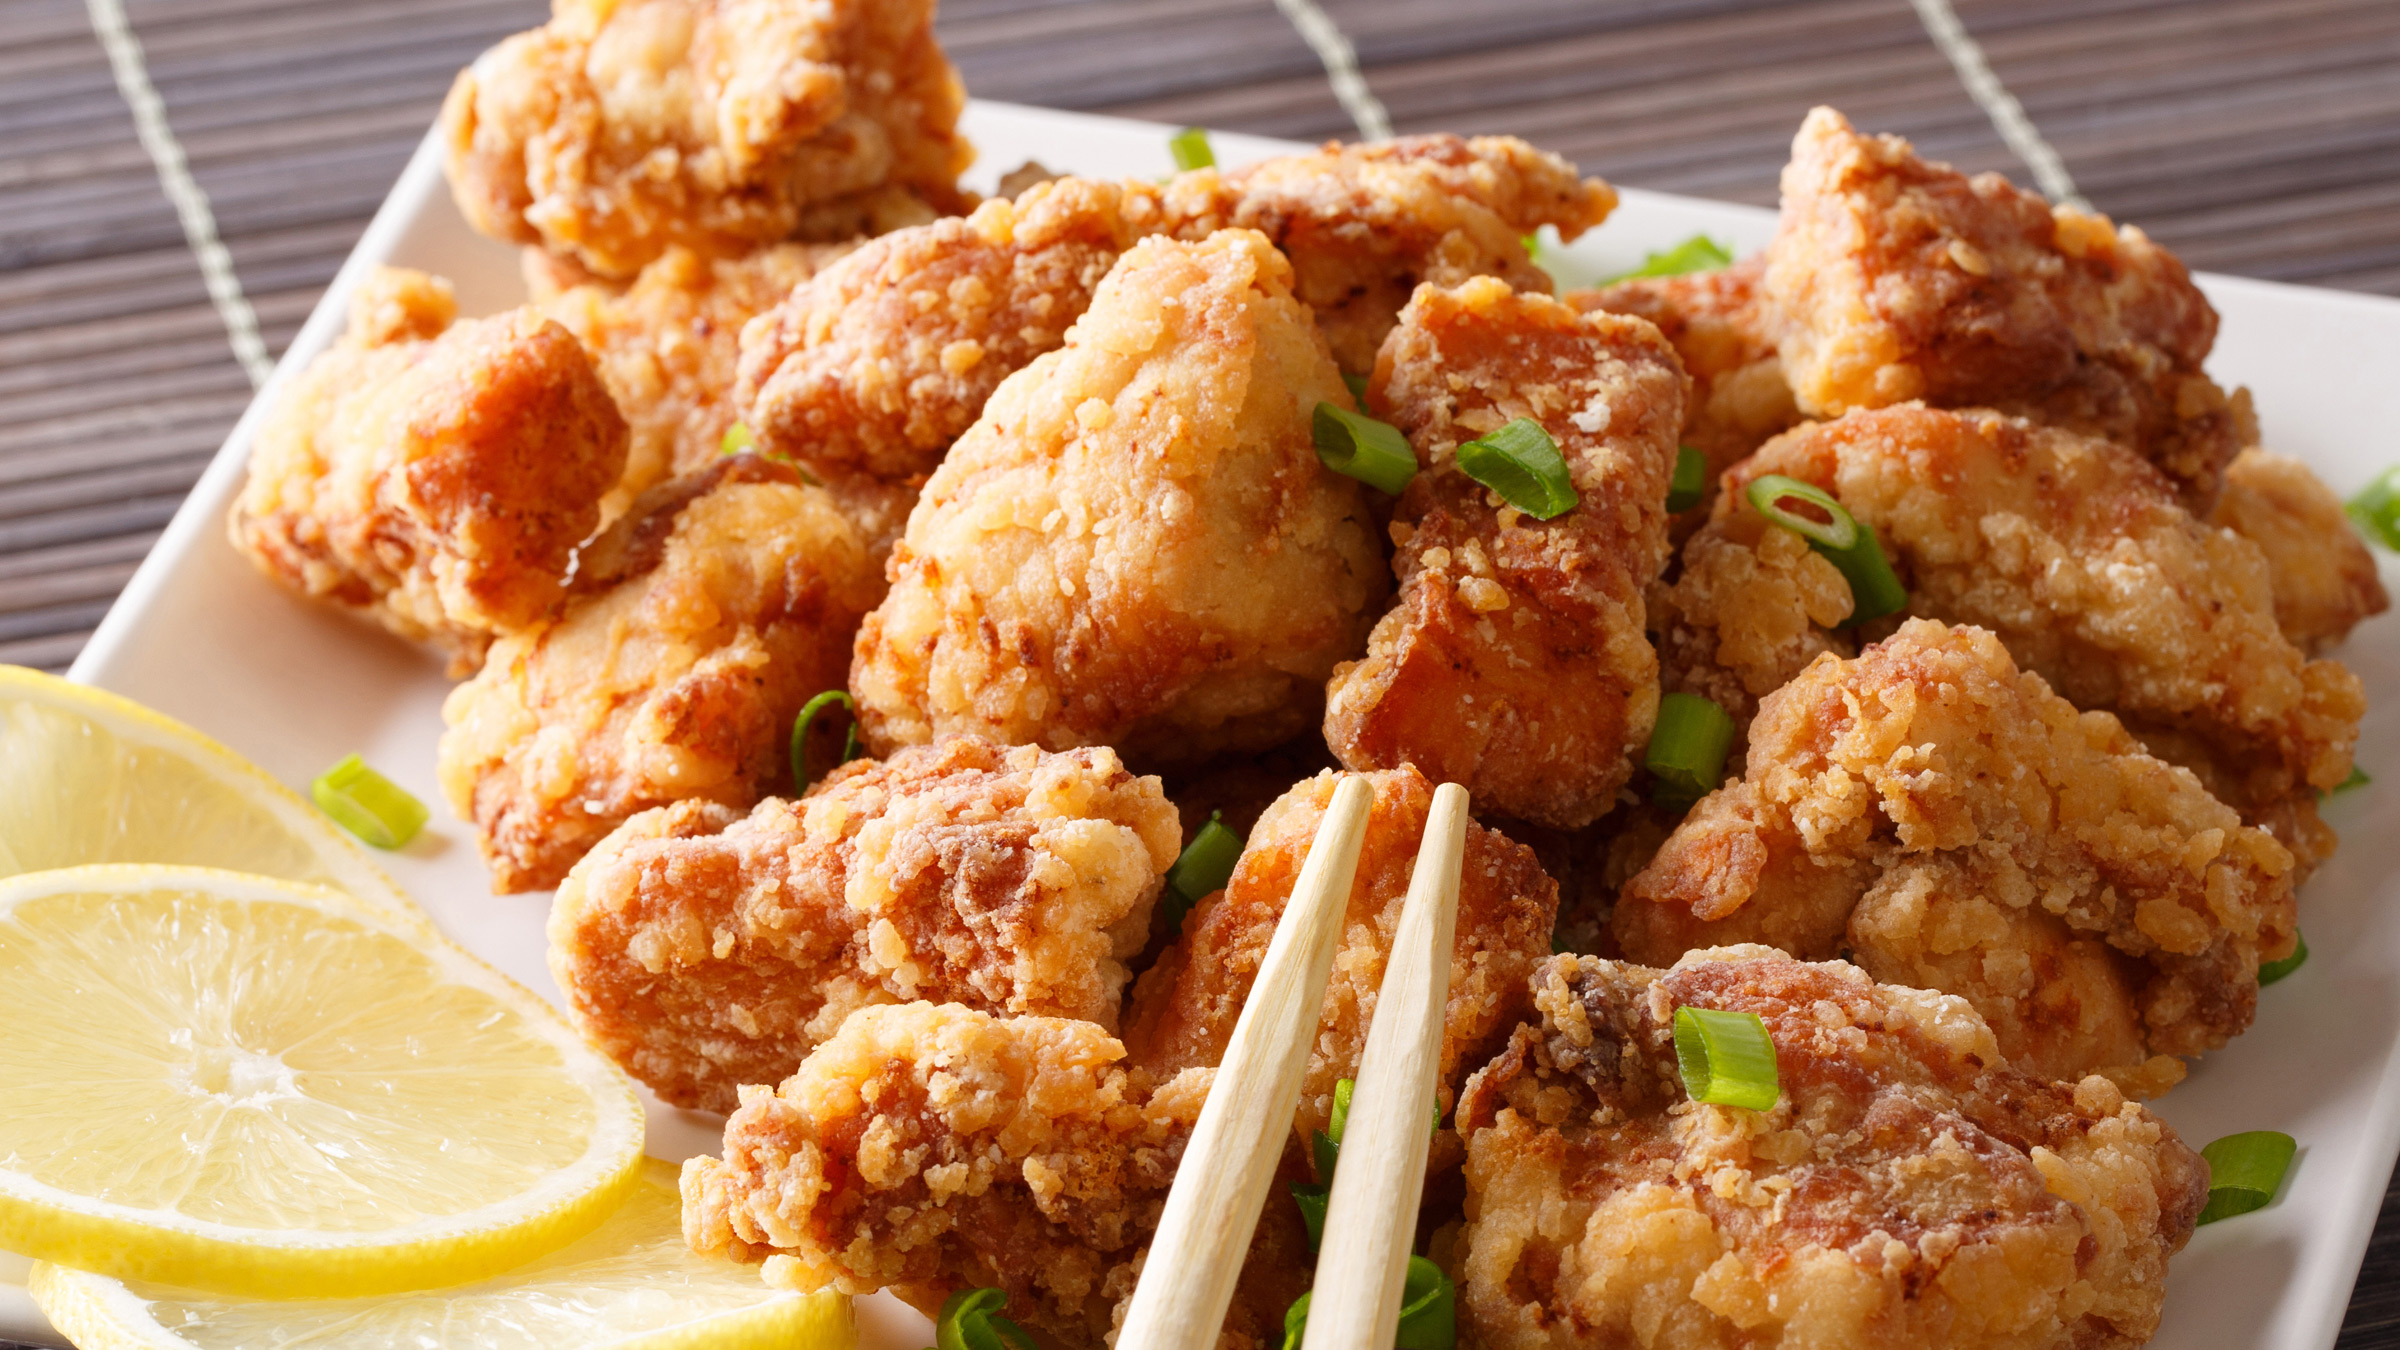 Karaage chopsticks lemon